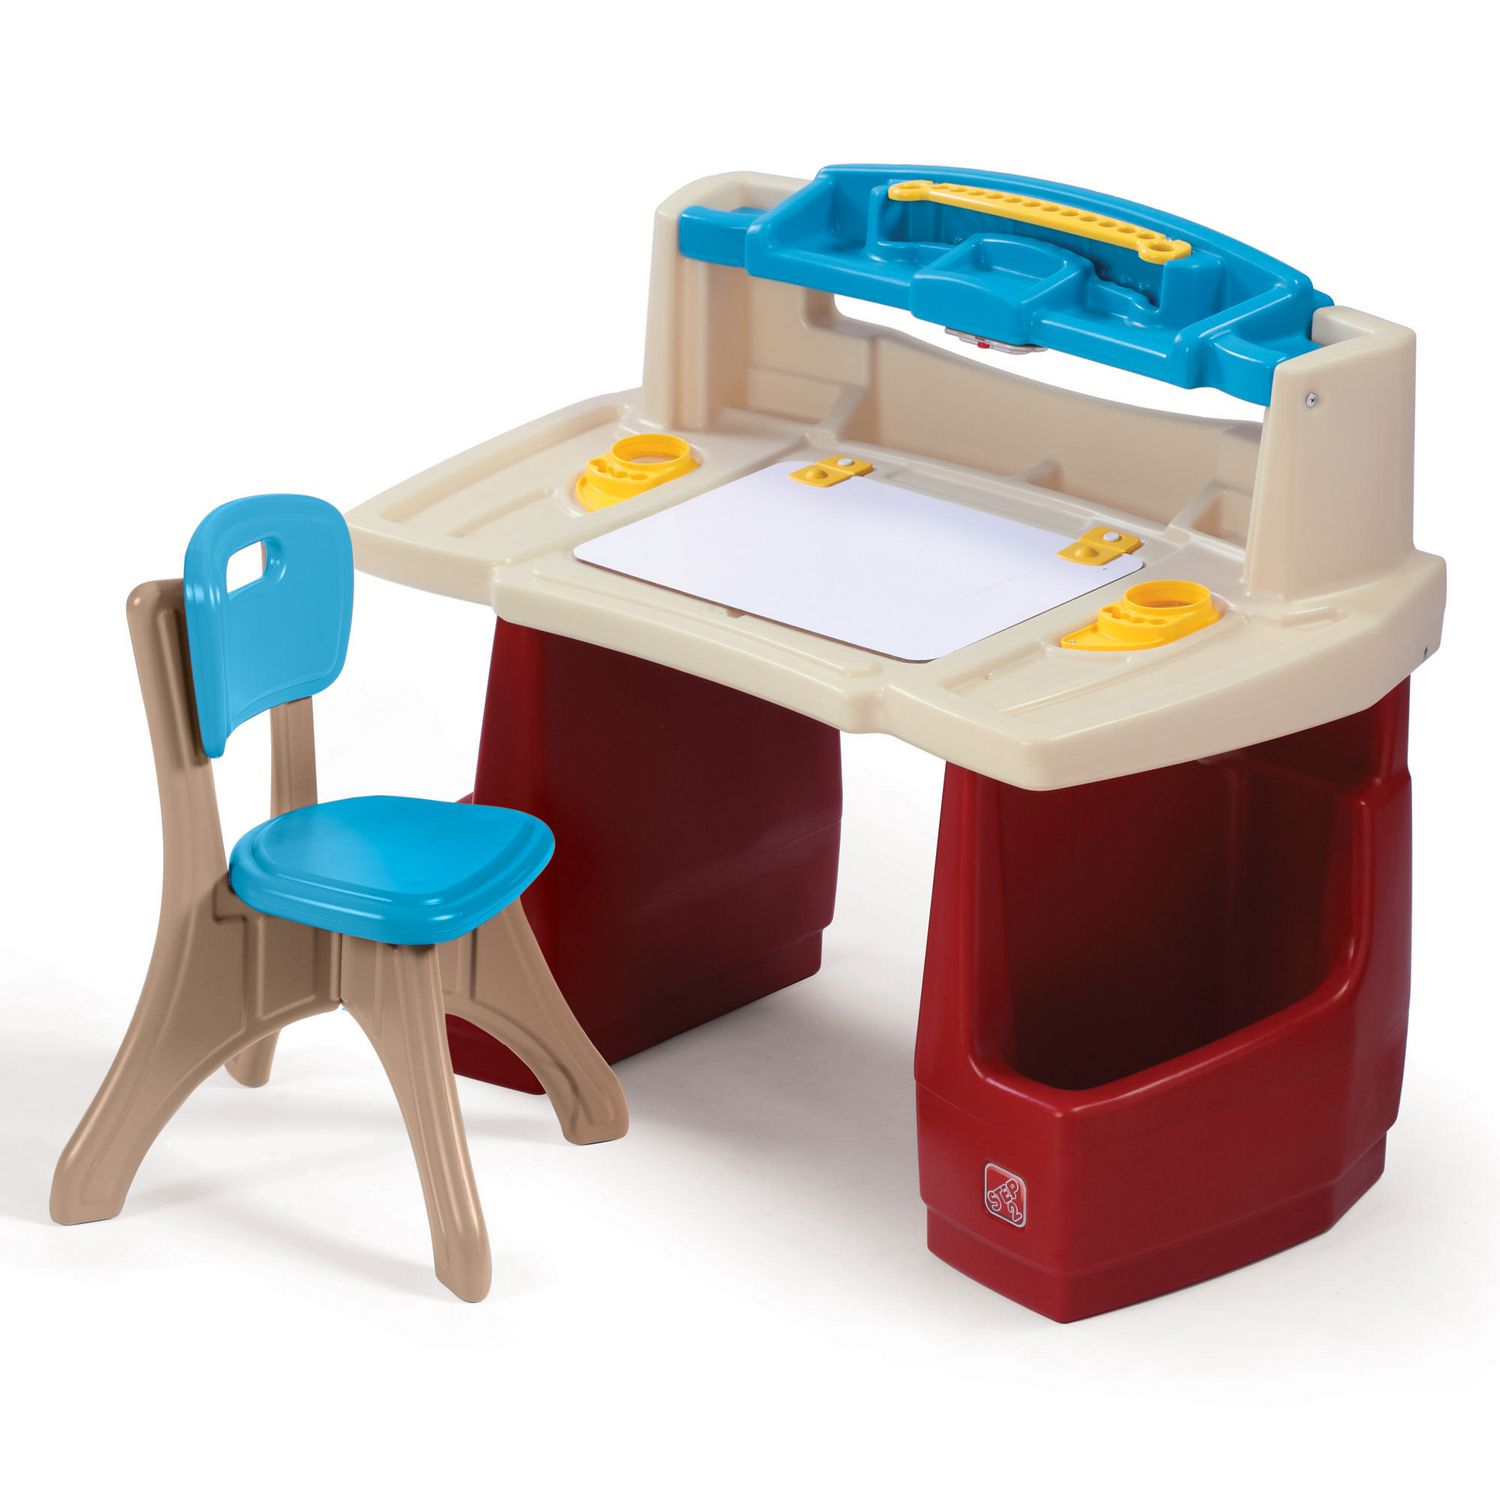 Genial Step2 Deluxe Art Master Desk Comes With A Comfortable New Traditions Chair